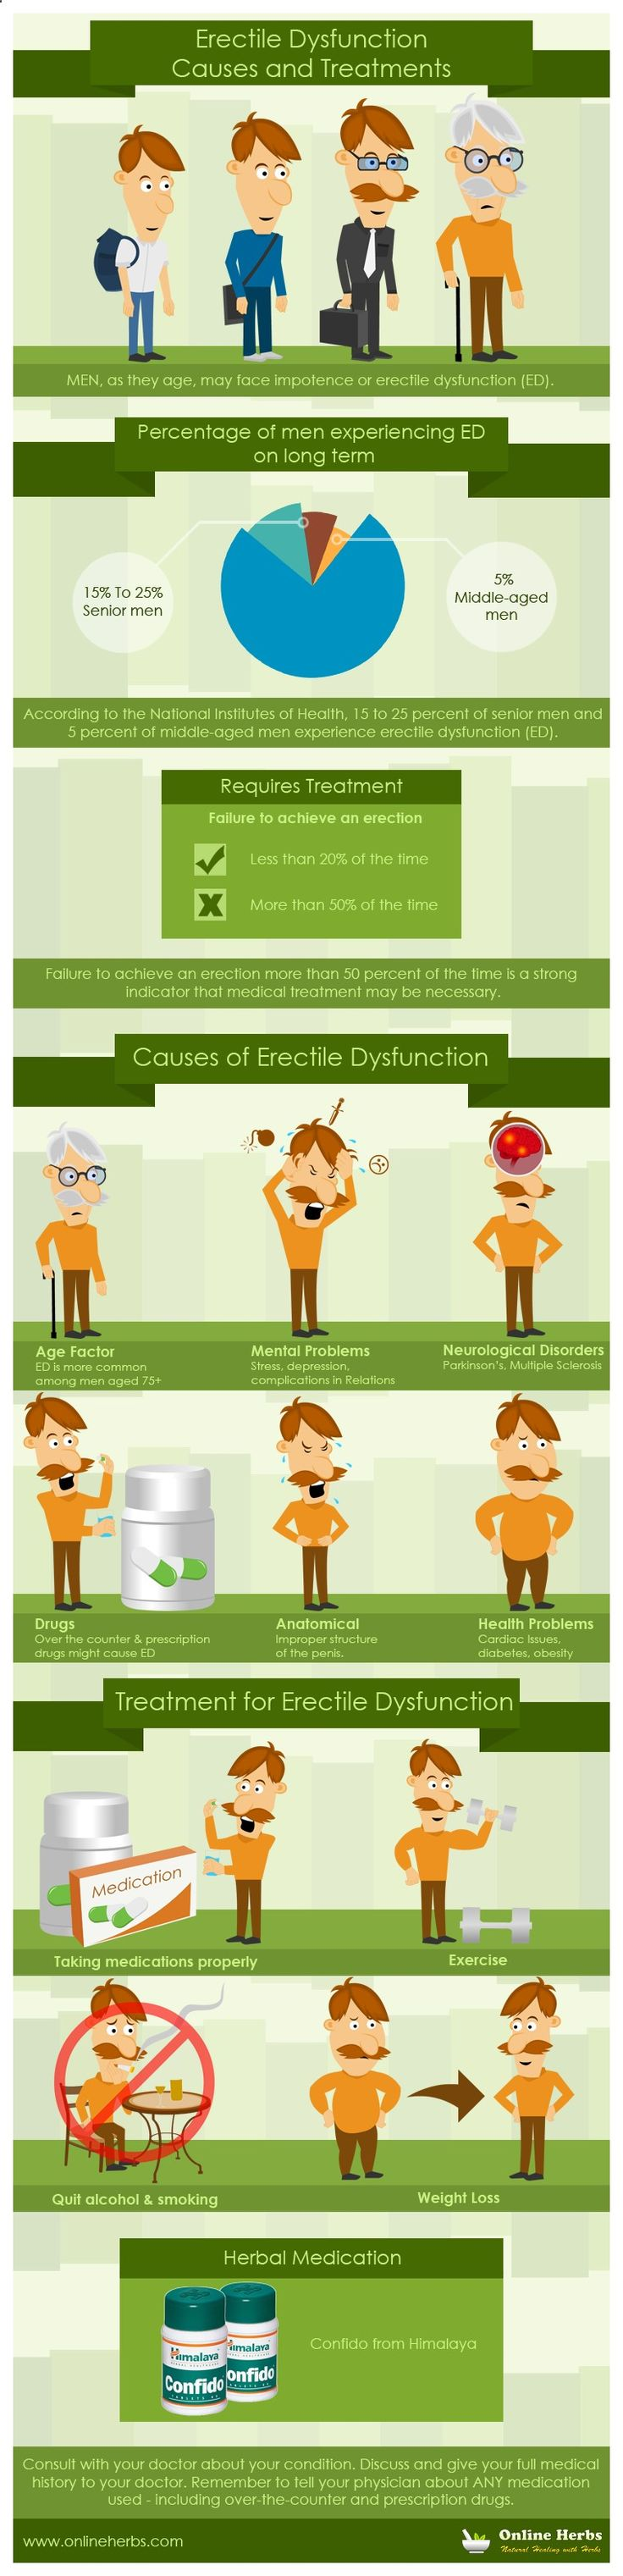 #ErectileDysfunction can be a big issue with men. Check for causes and #treatment blog.onlineherbs....